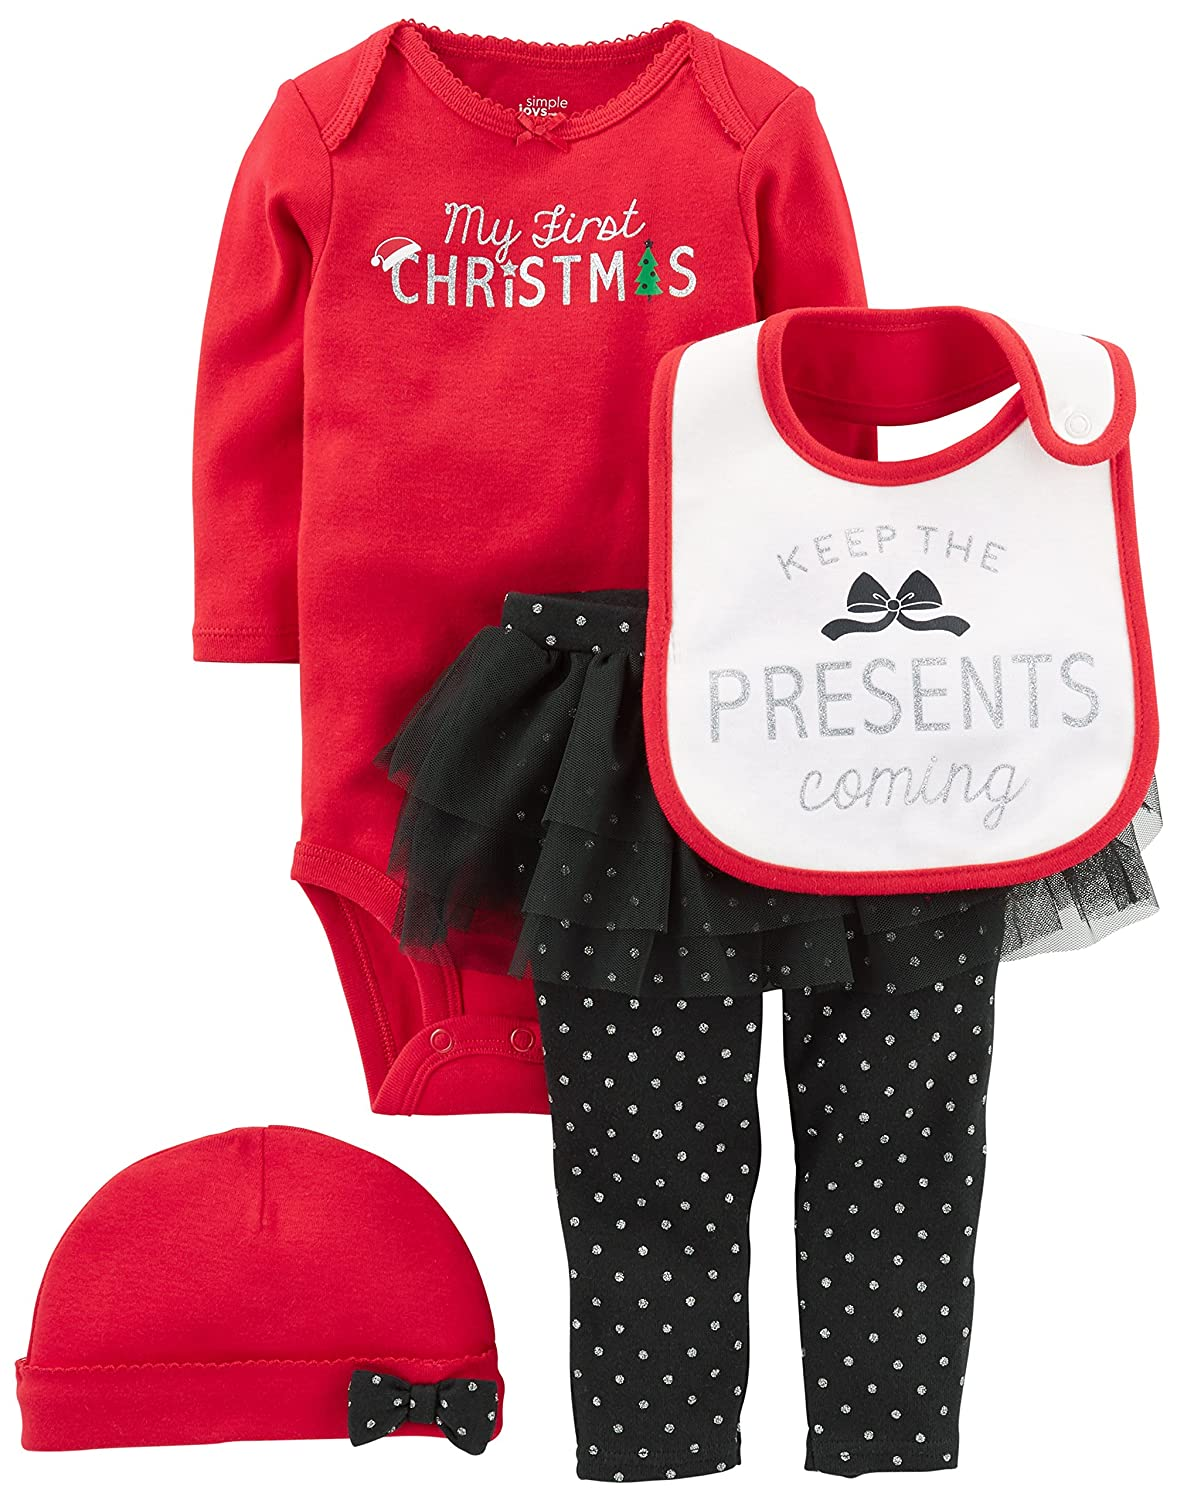 24436416f Celebrate baby\'s first Christmas in this coordinating four-piece set  featuring a long-sleeve bodysuit, polka dot tutu pants, a knit hat, and a  festive bib.